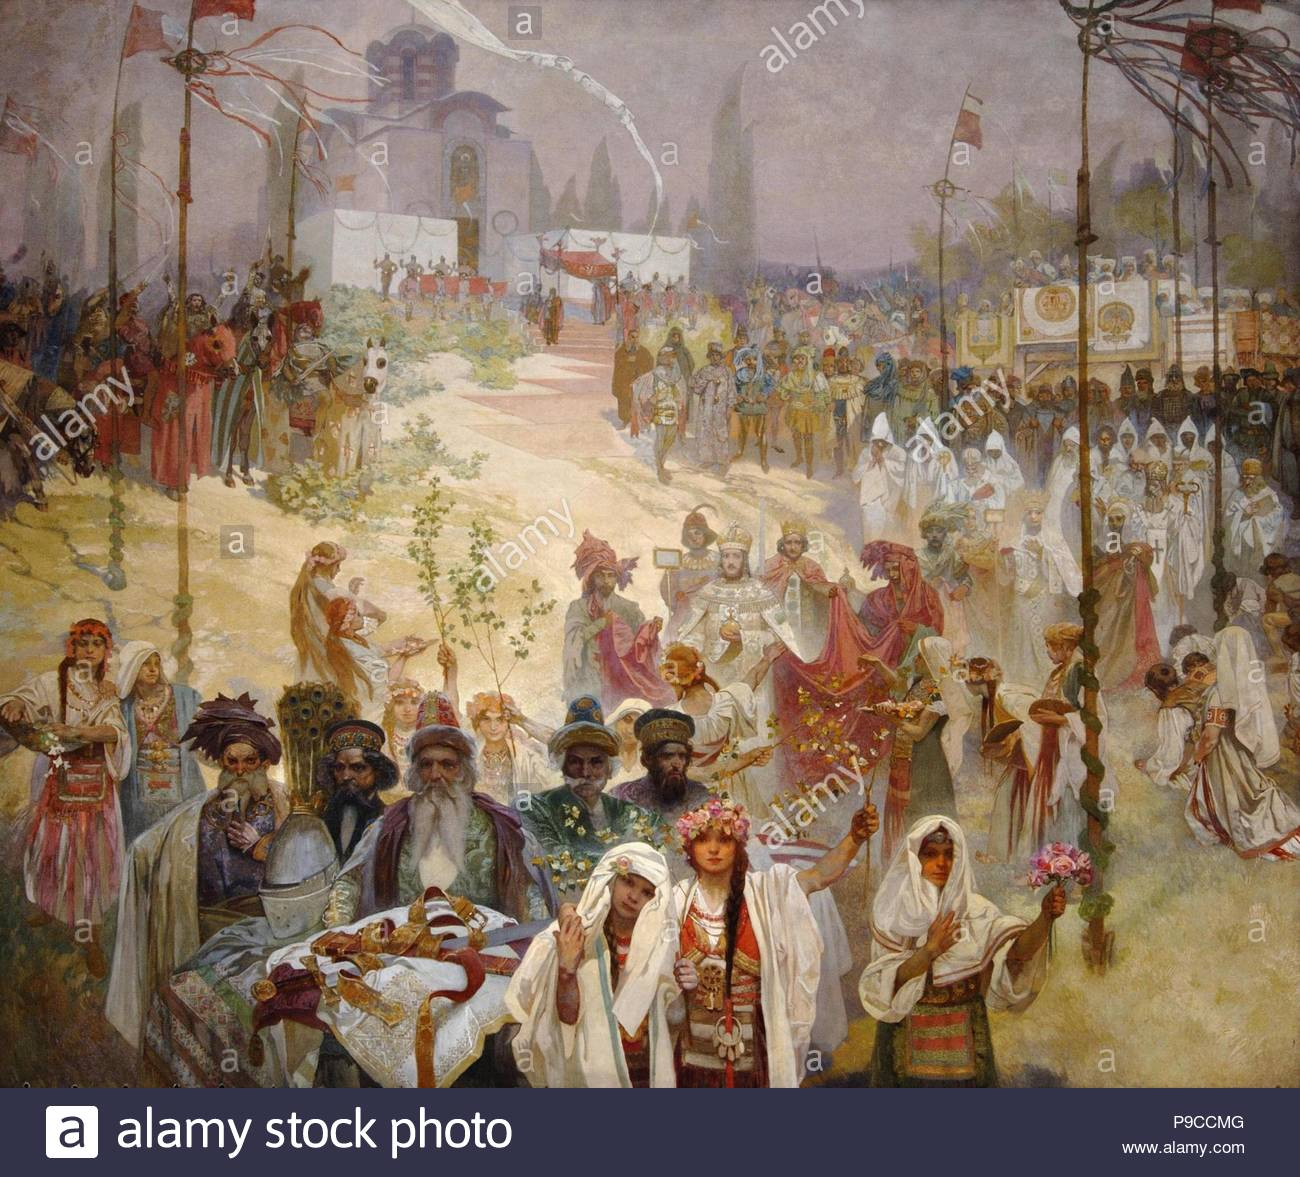 The Coronation of the Serbian Tsar Stefan Dusan as East Roman Emperor (The cycle The Slav Epic). Museum: City Gallery Prague. - Stock Image